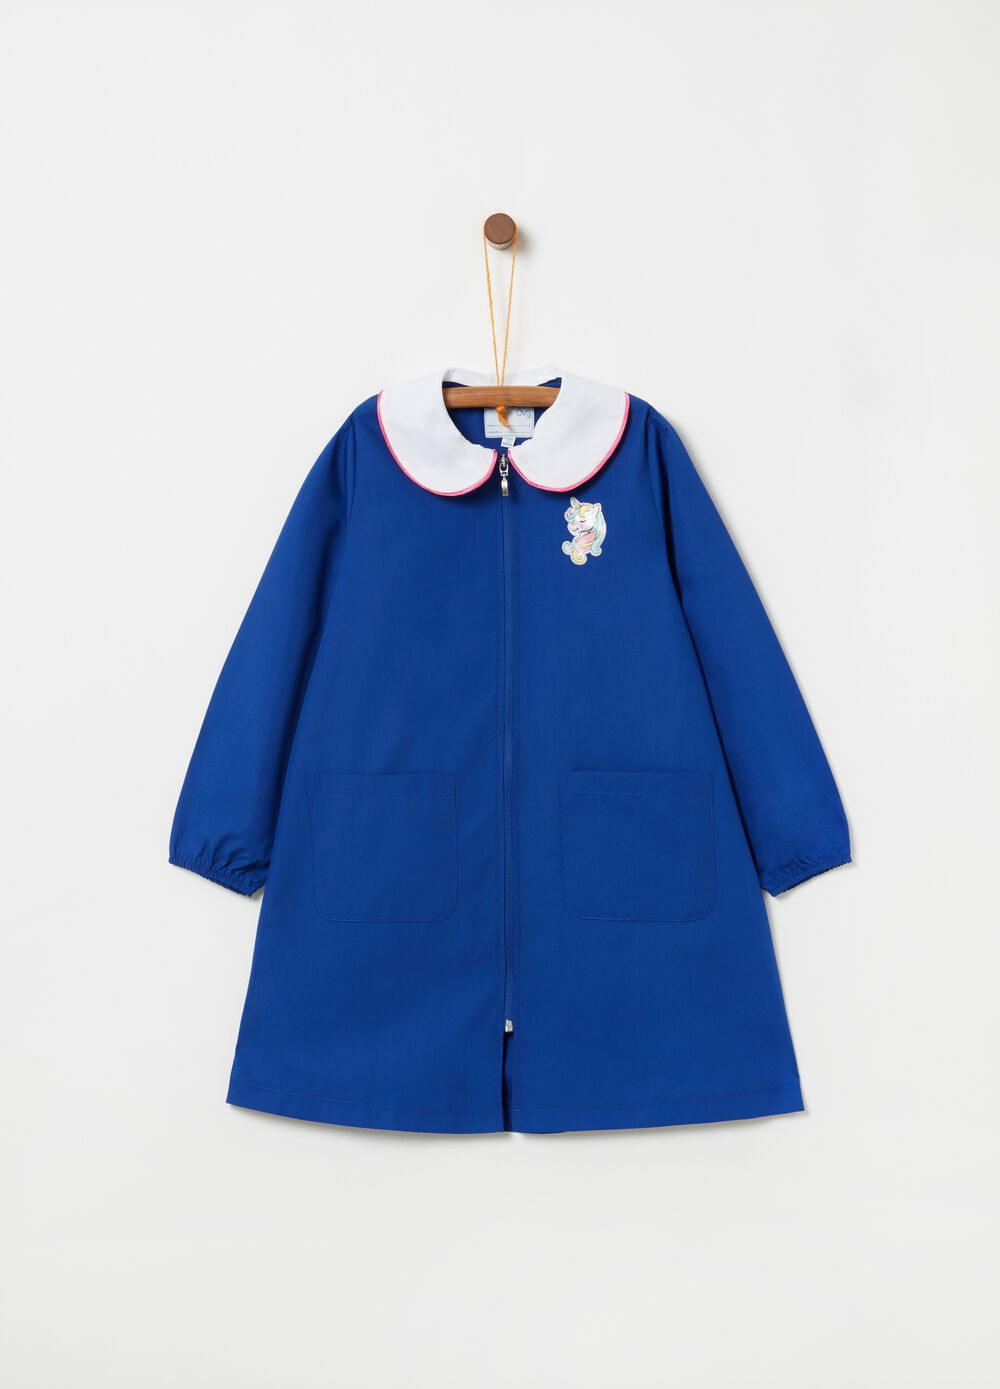 School smock with embroidered unicorn